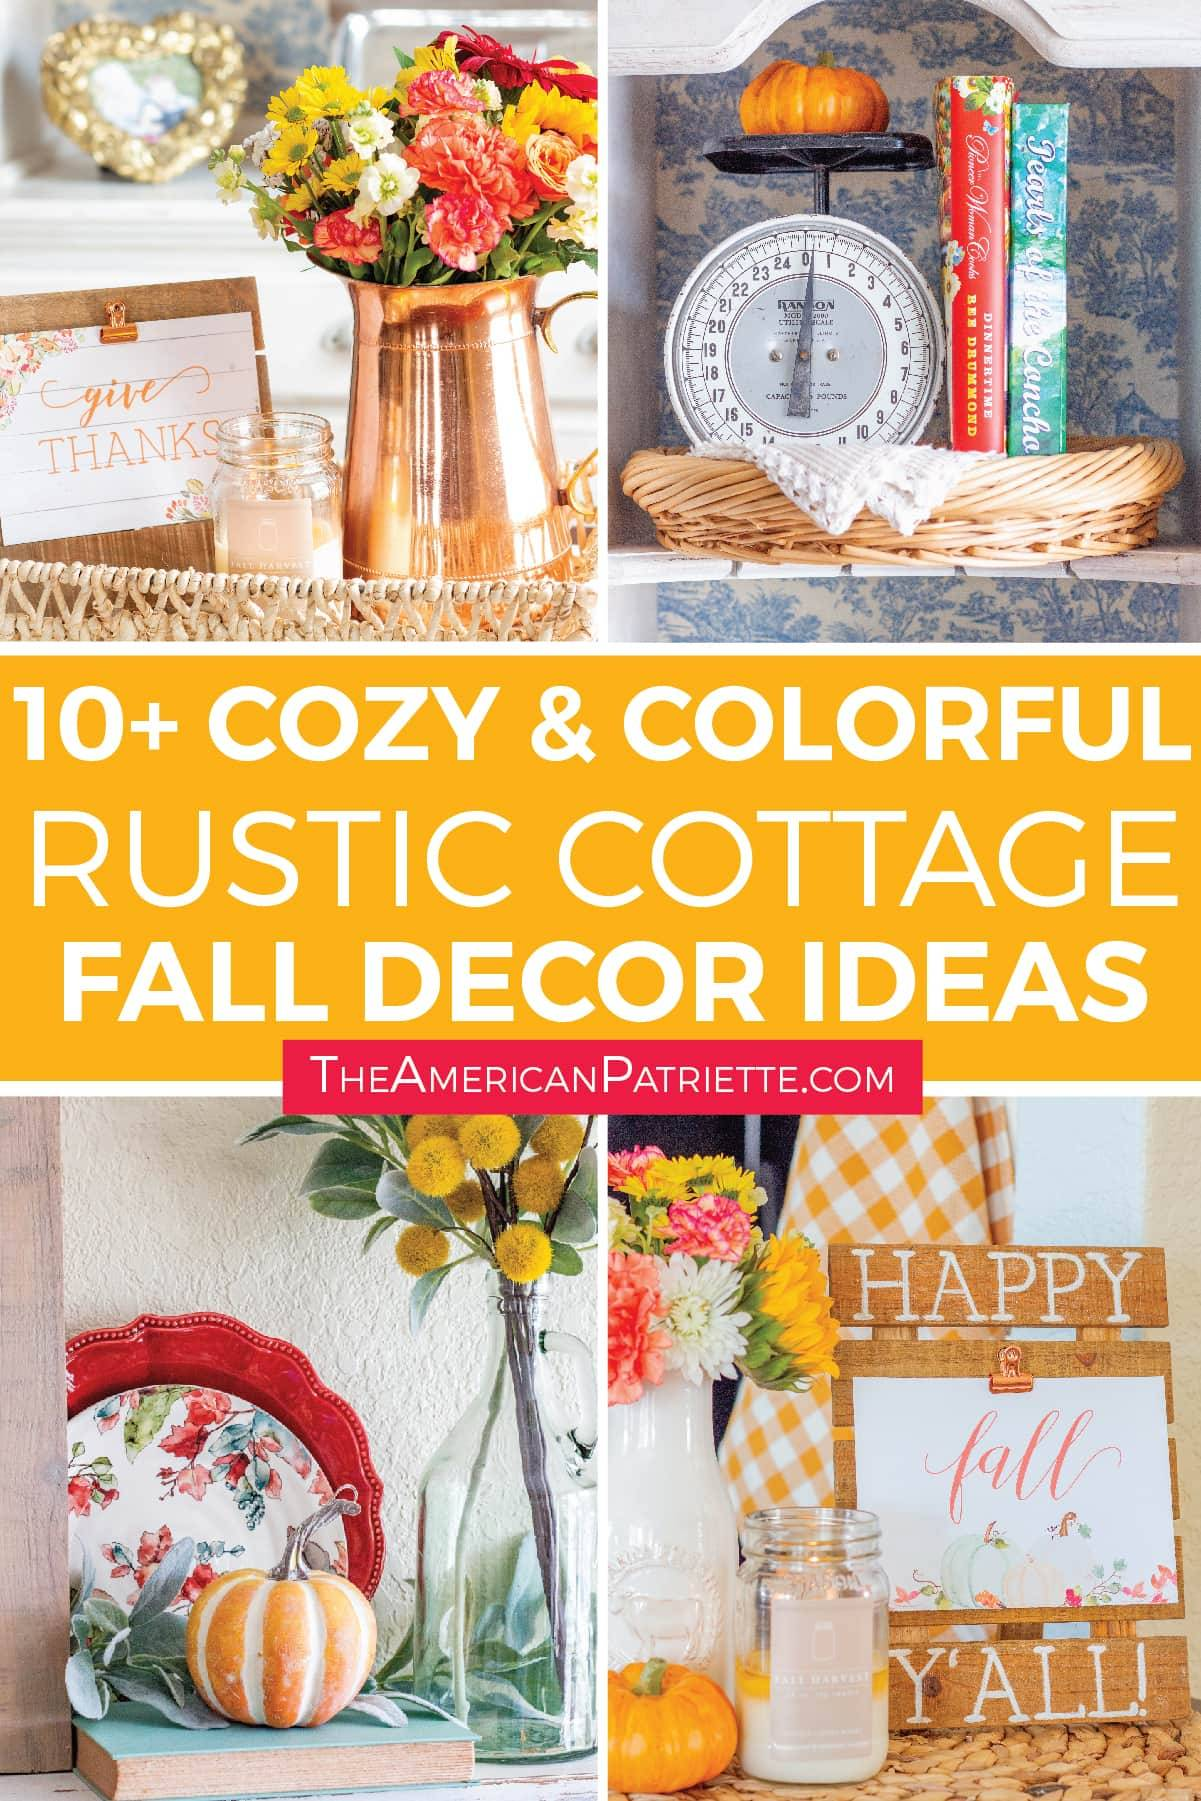 Cozy and Colorful Country Cottage Fall Decor Ideas Artboard 5 copy